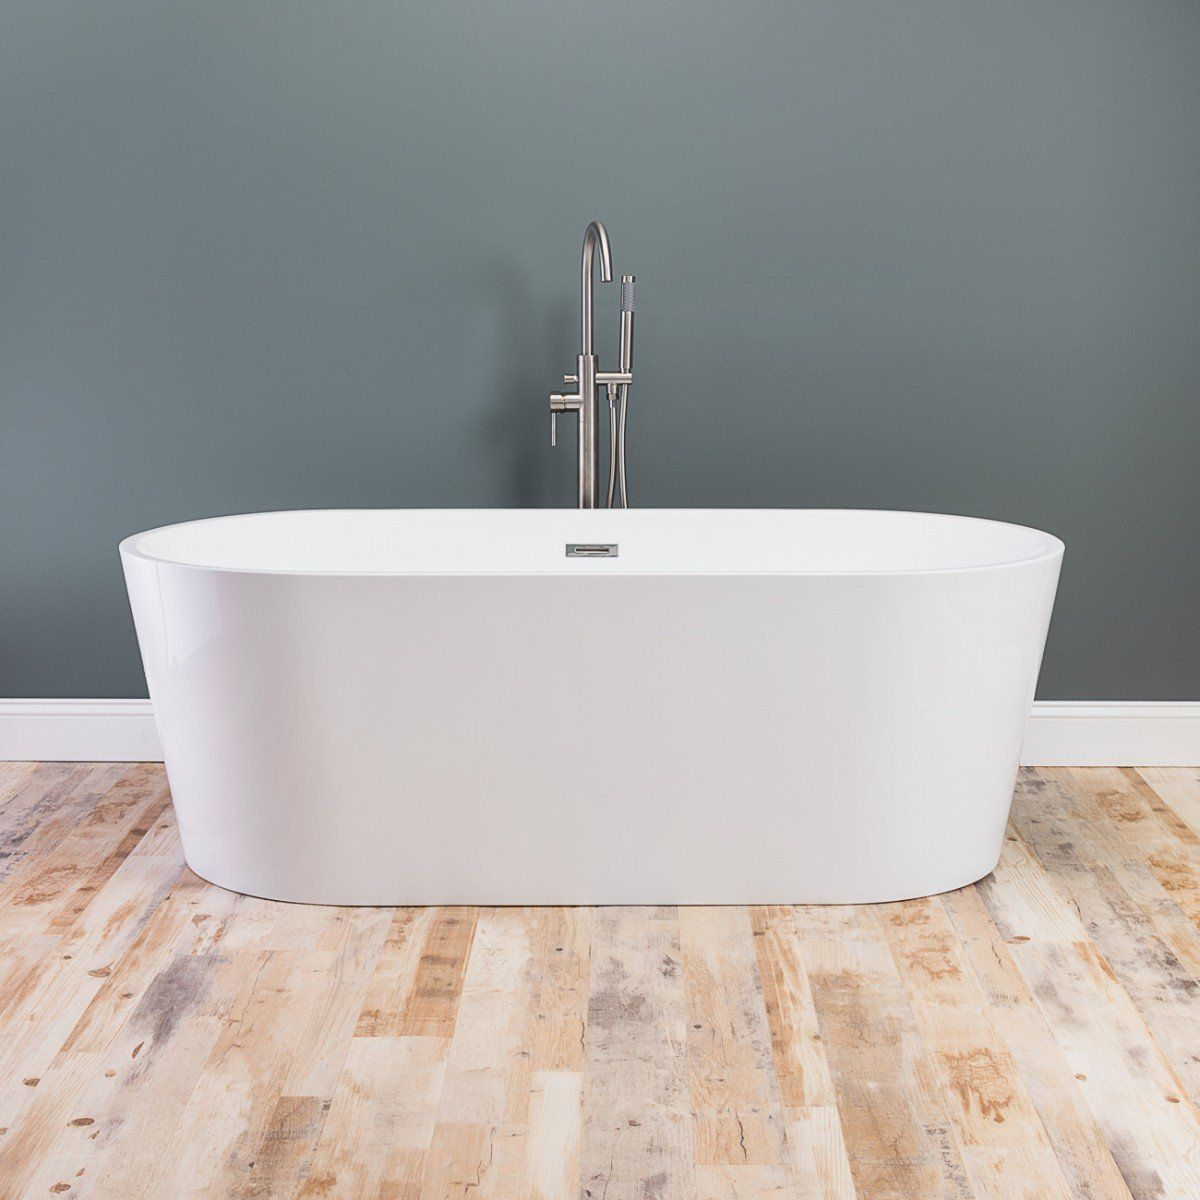 Mia Acrylic Double Ended Freestanding Tub No Faucet Drillings